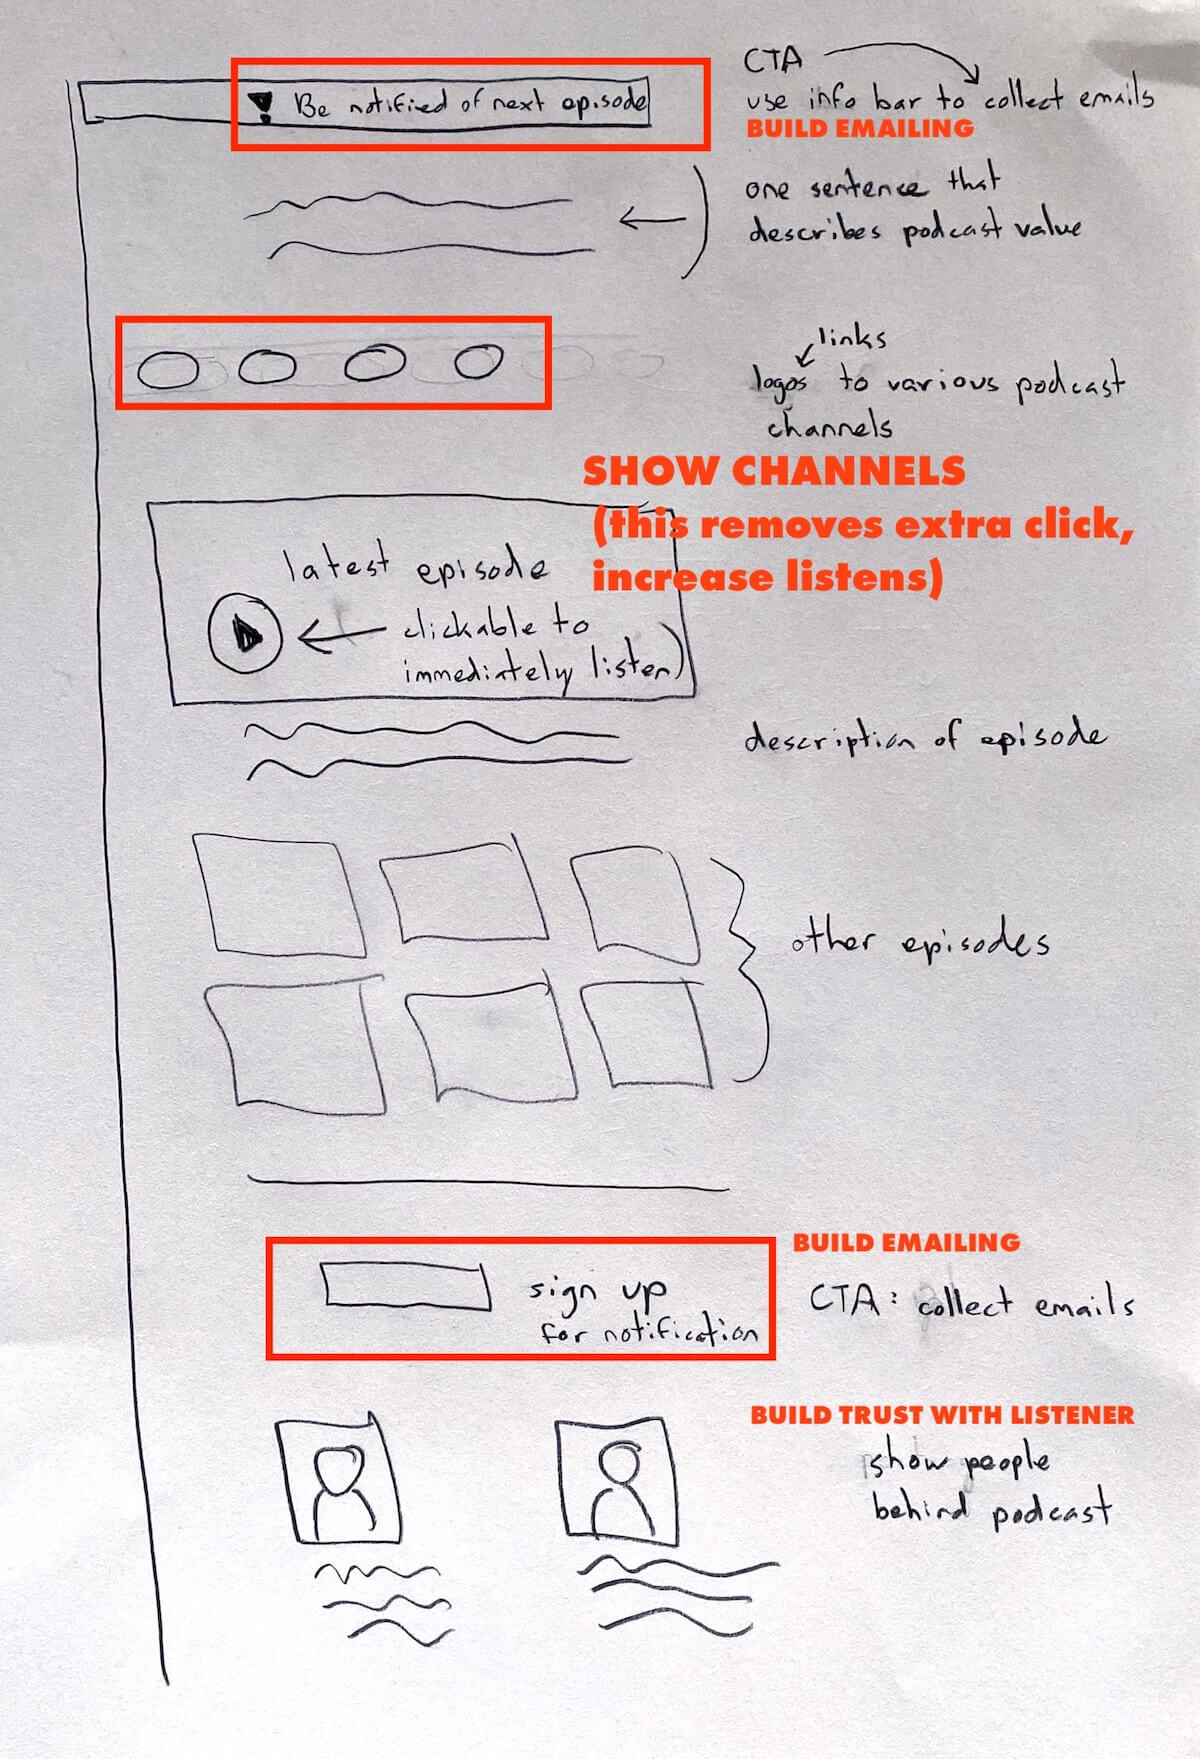 Schematic representation, by hand, of the different elements of the landing page of insane